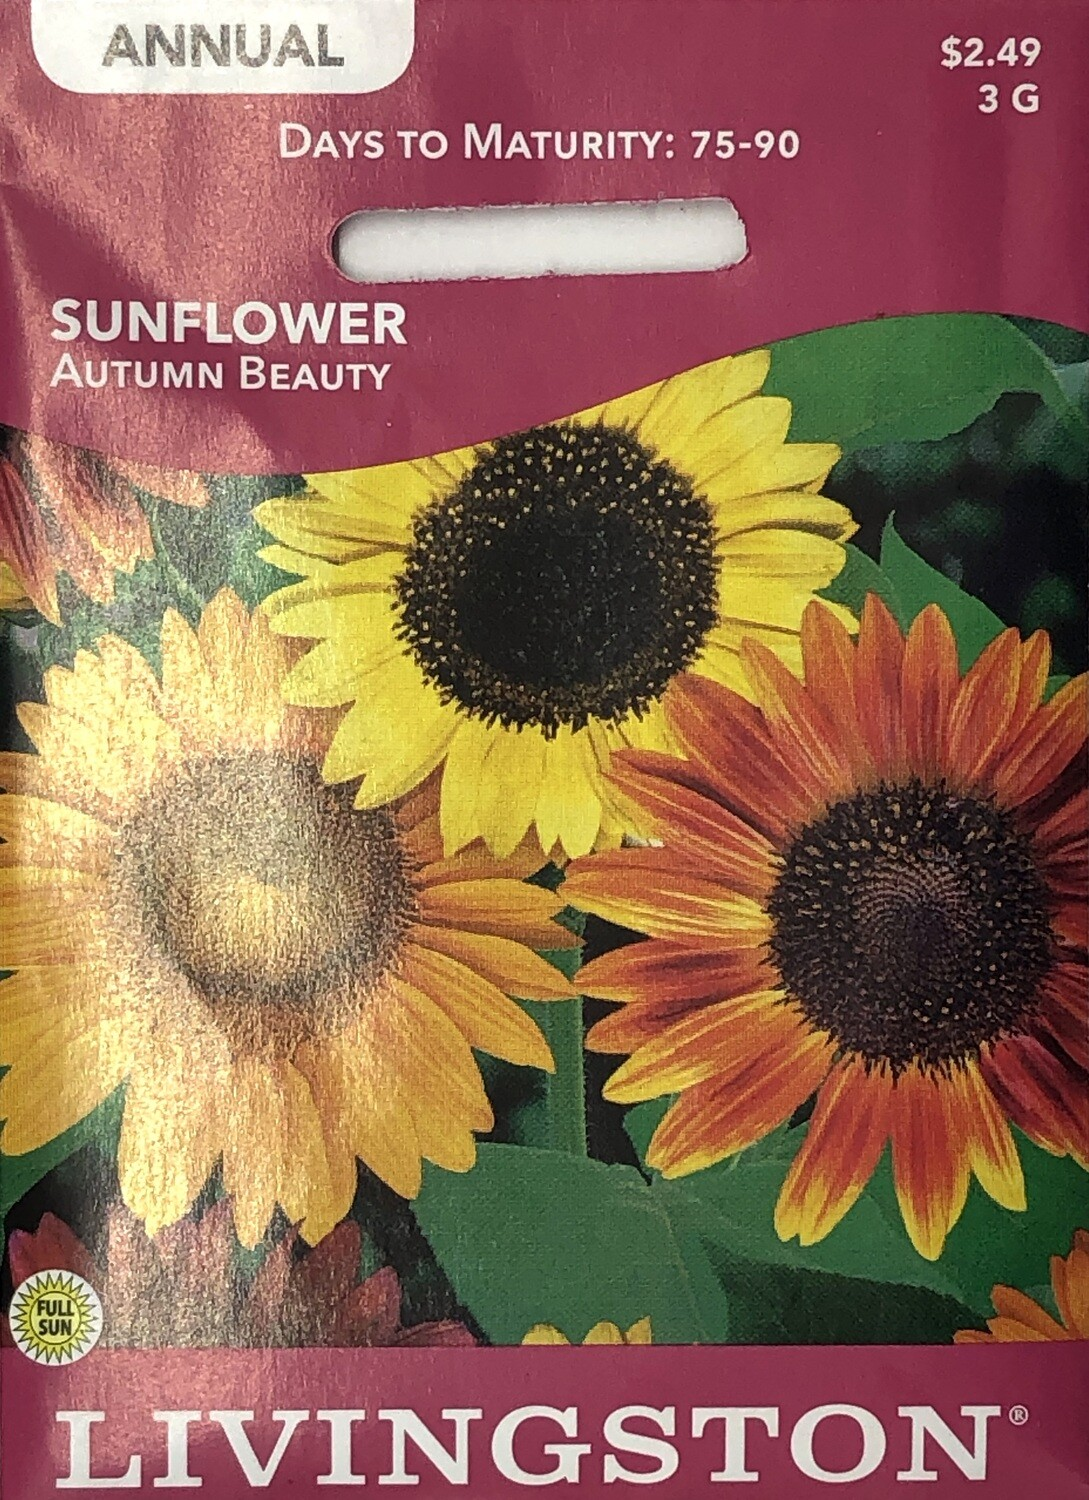 SUNFLOWER - AUTUMN BEAUTY